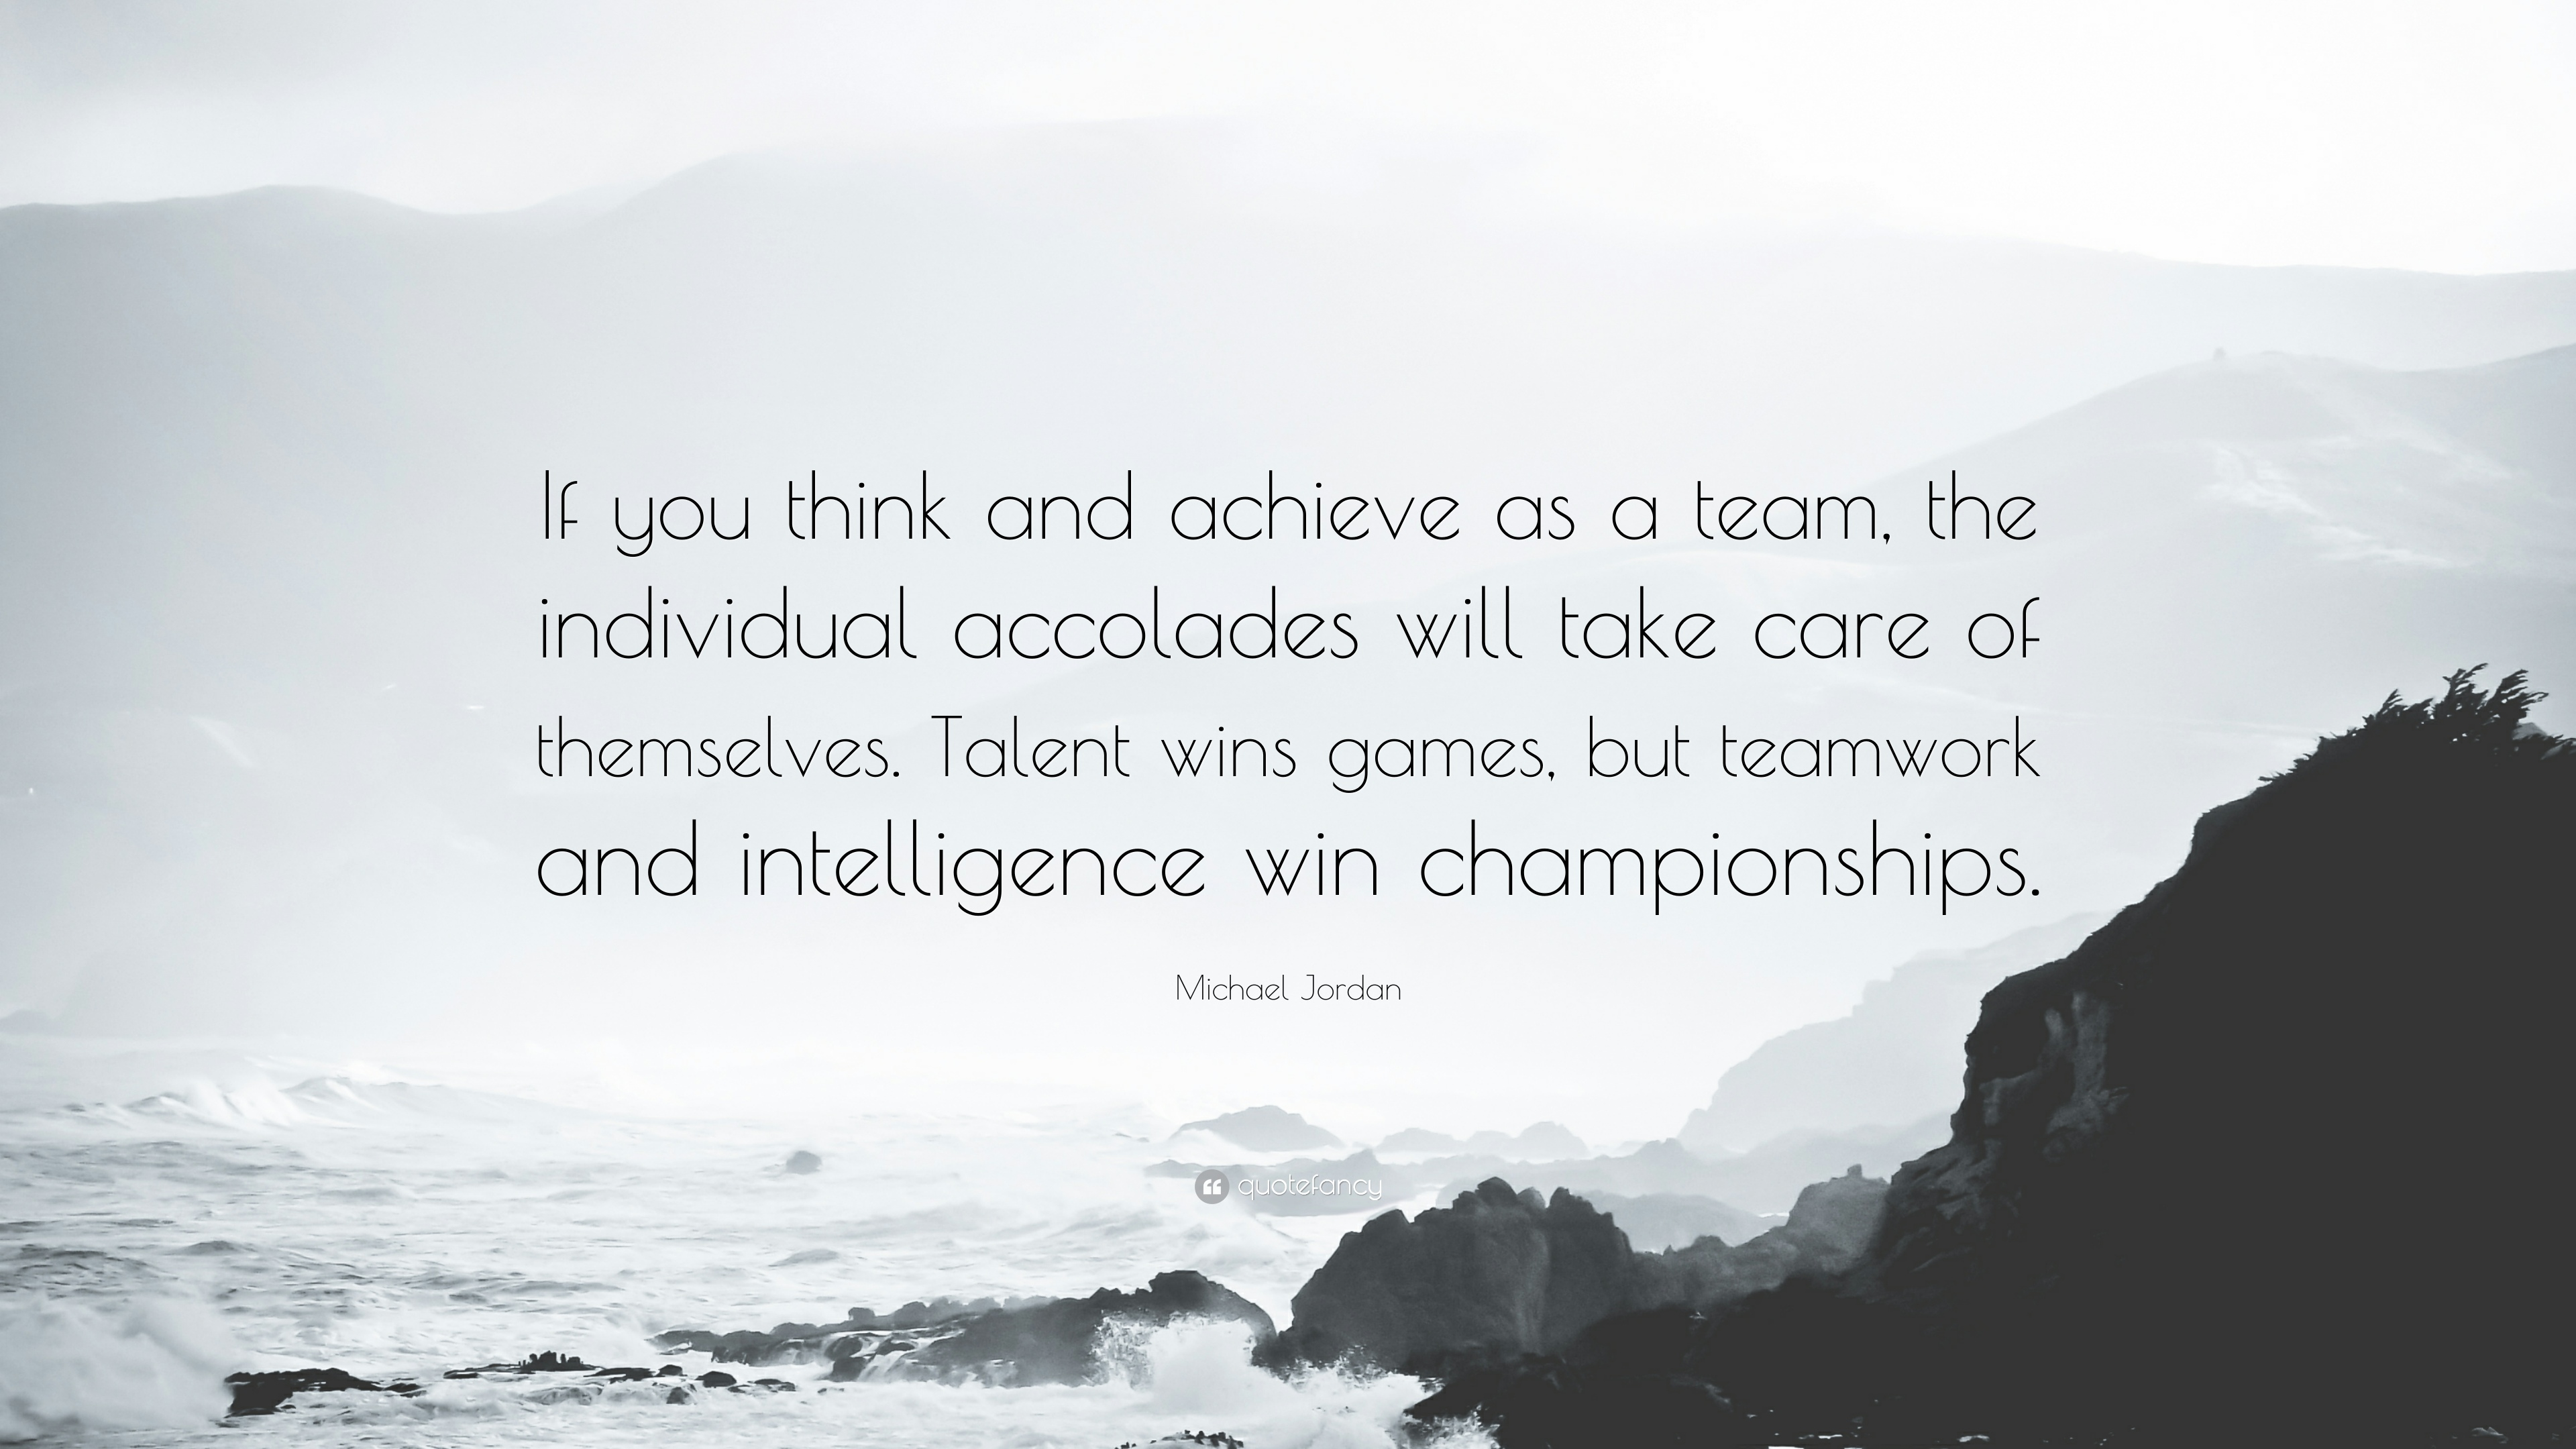 Teamwork Quotes Impressive Teamwork Quotes 40 Wallpapers  Quotefancy